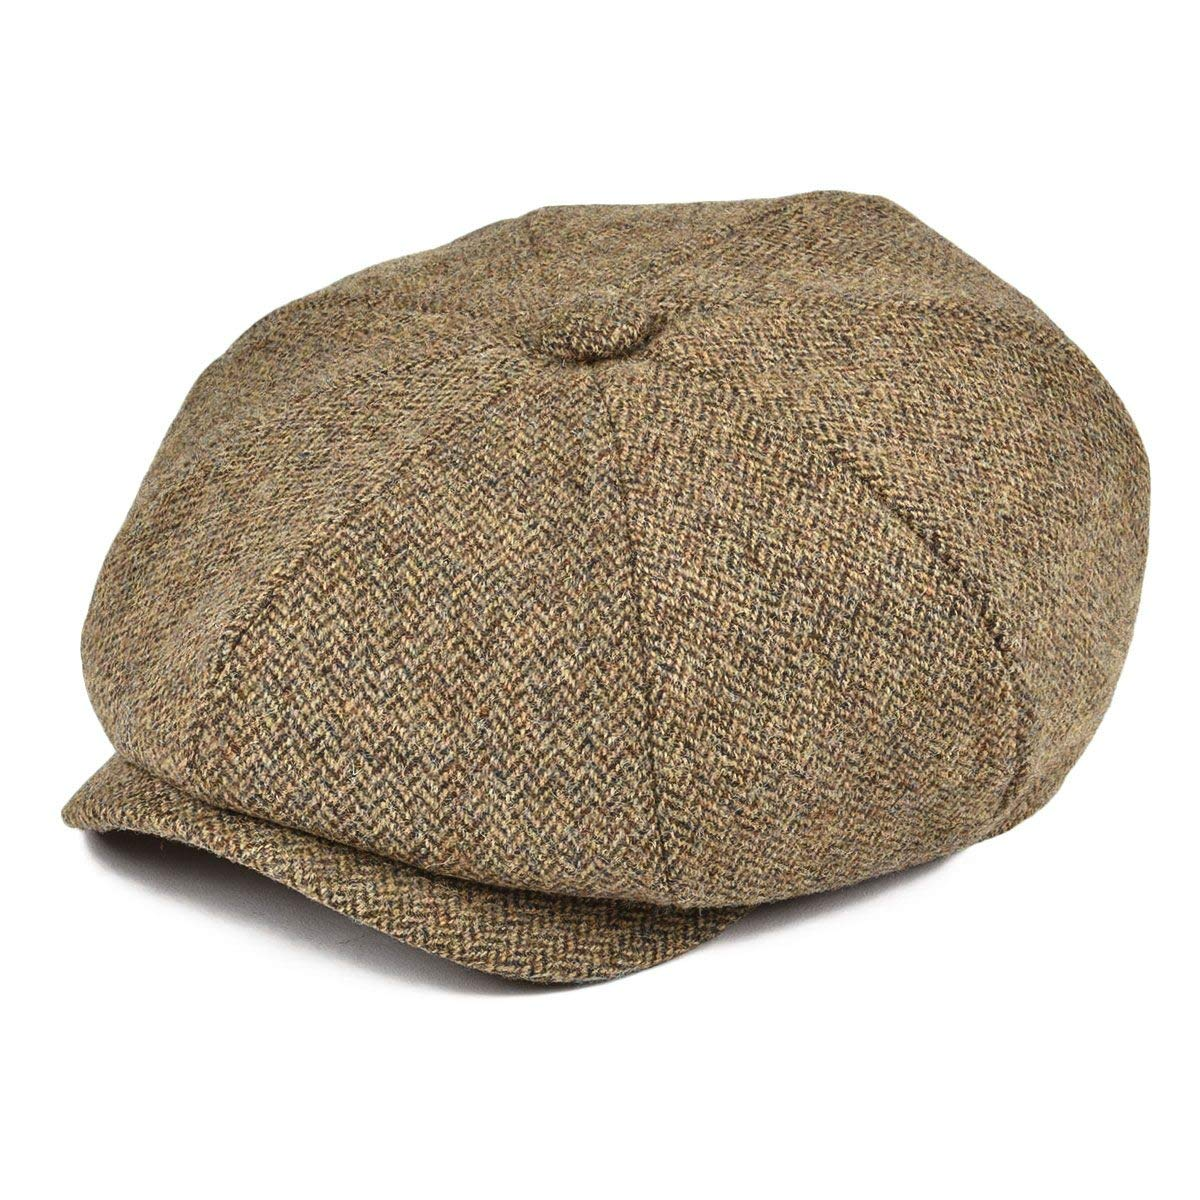 1920s Mens Hats & Caps | Gatsby, Peaky Blinders, Gangster BOTVELA Mens Premium Wool Classic Flat Ivy Newsboy Cap Herringbone Pattern Flecked Hat $29.99 AT vintagedancer.com